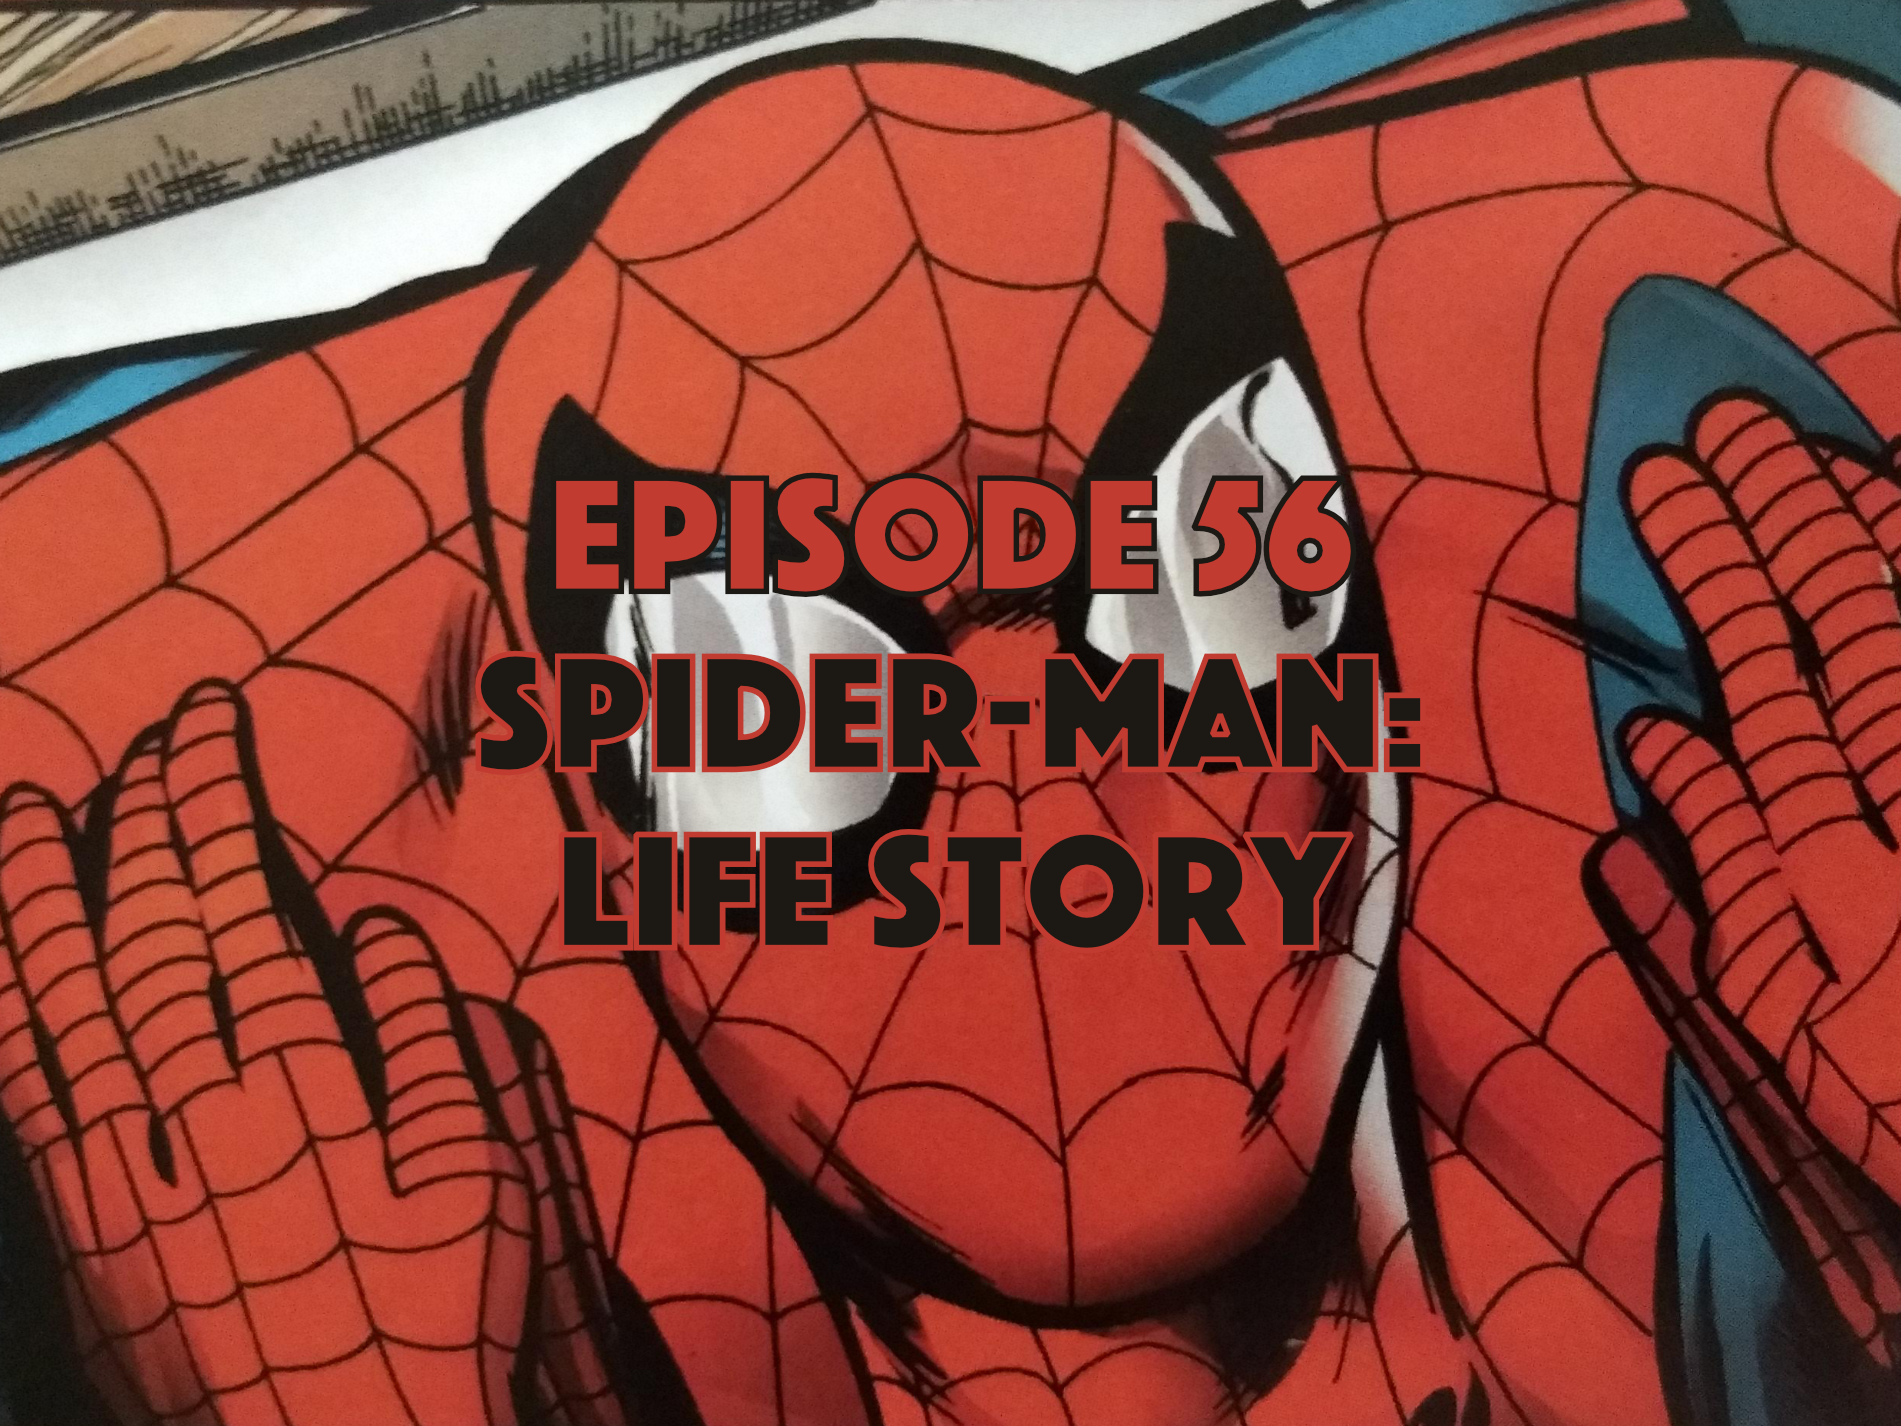 Spider-Man Life Story, Graphic Novel Explorers Club, Comic Book Podcast, Graphic Novel Podcast